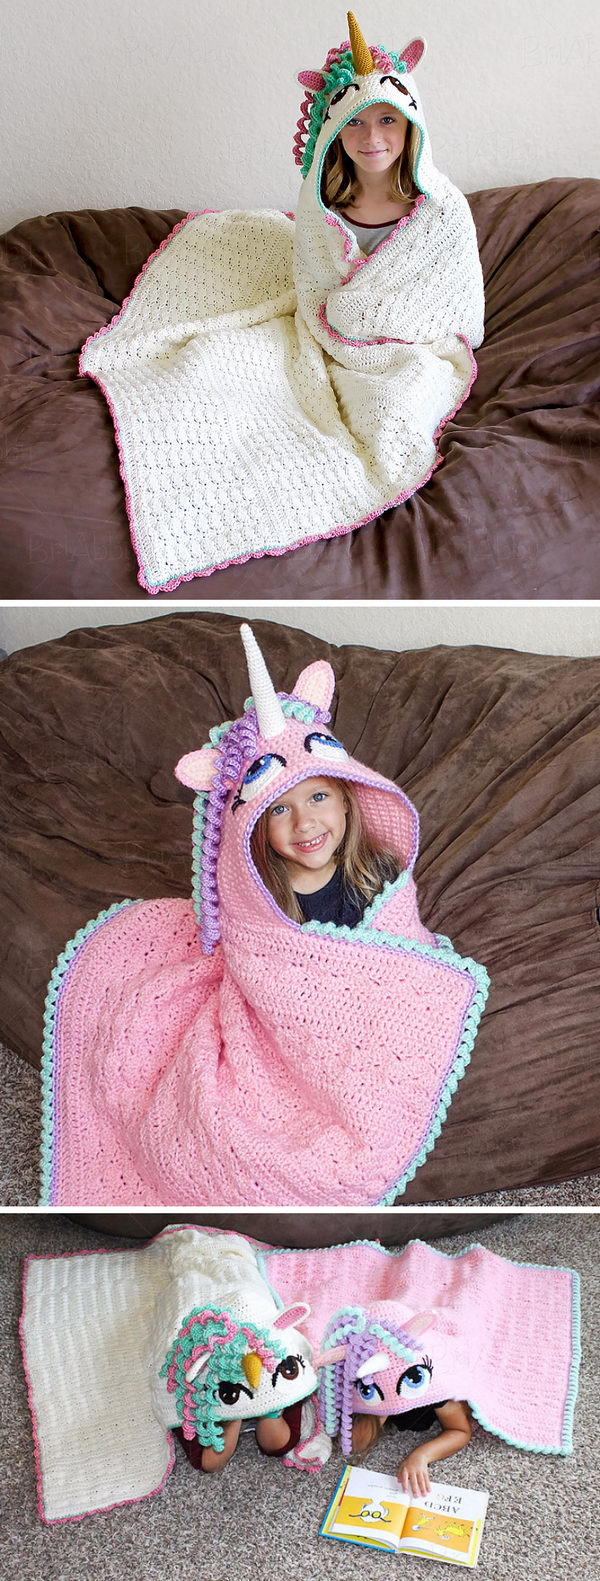 15 Crochet Hooded Blanket Ideas 2017